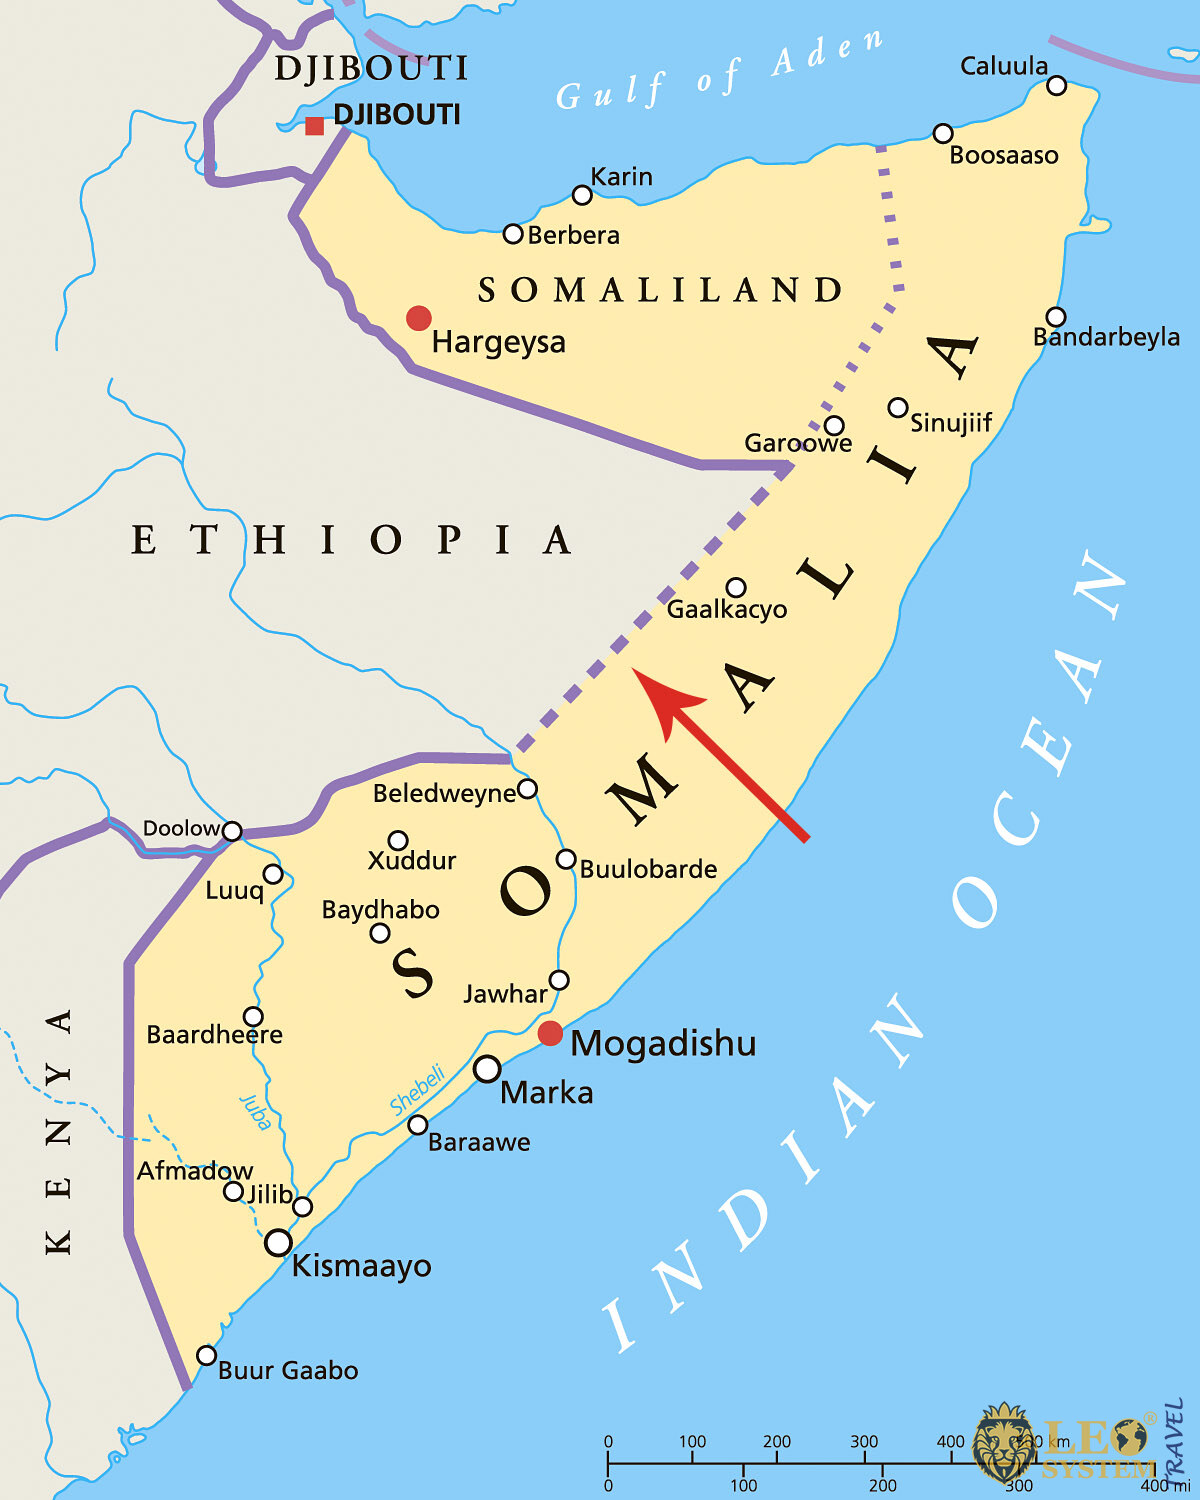 Image of a map showing the location of Jubba River, African Continent